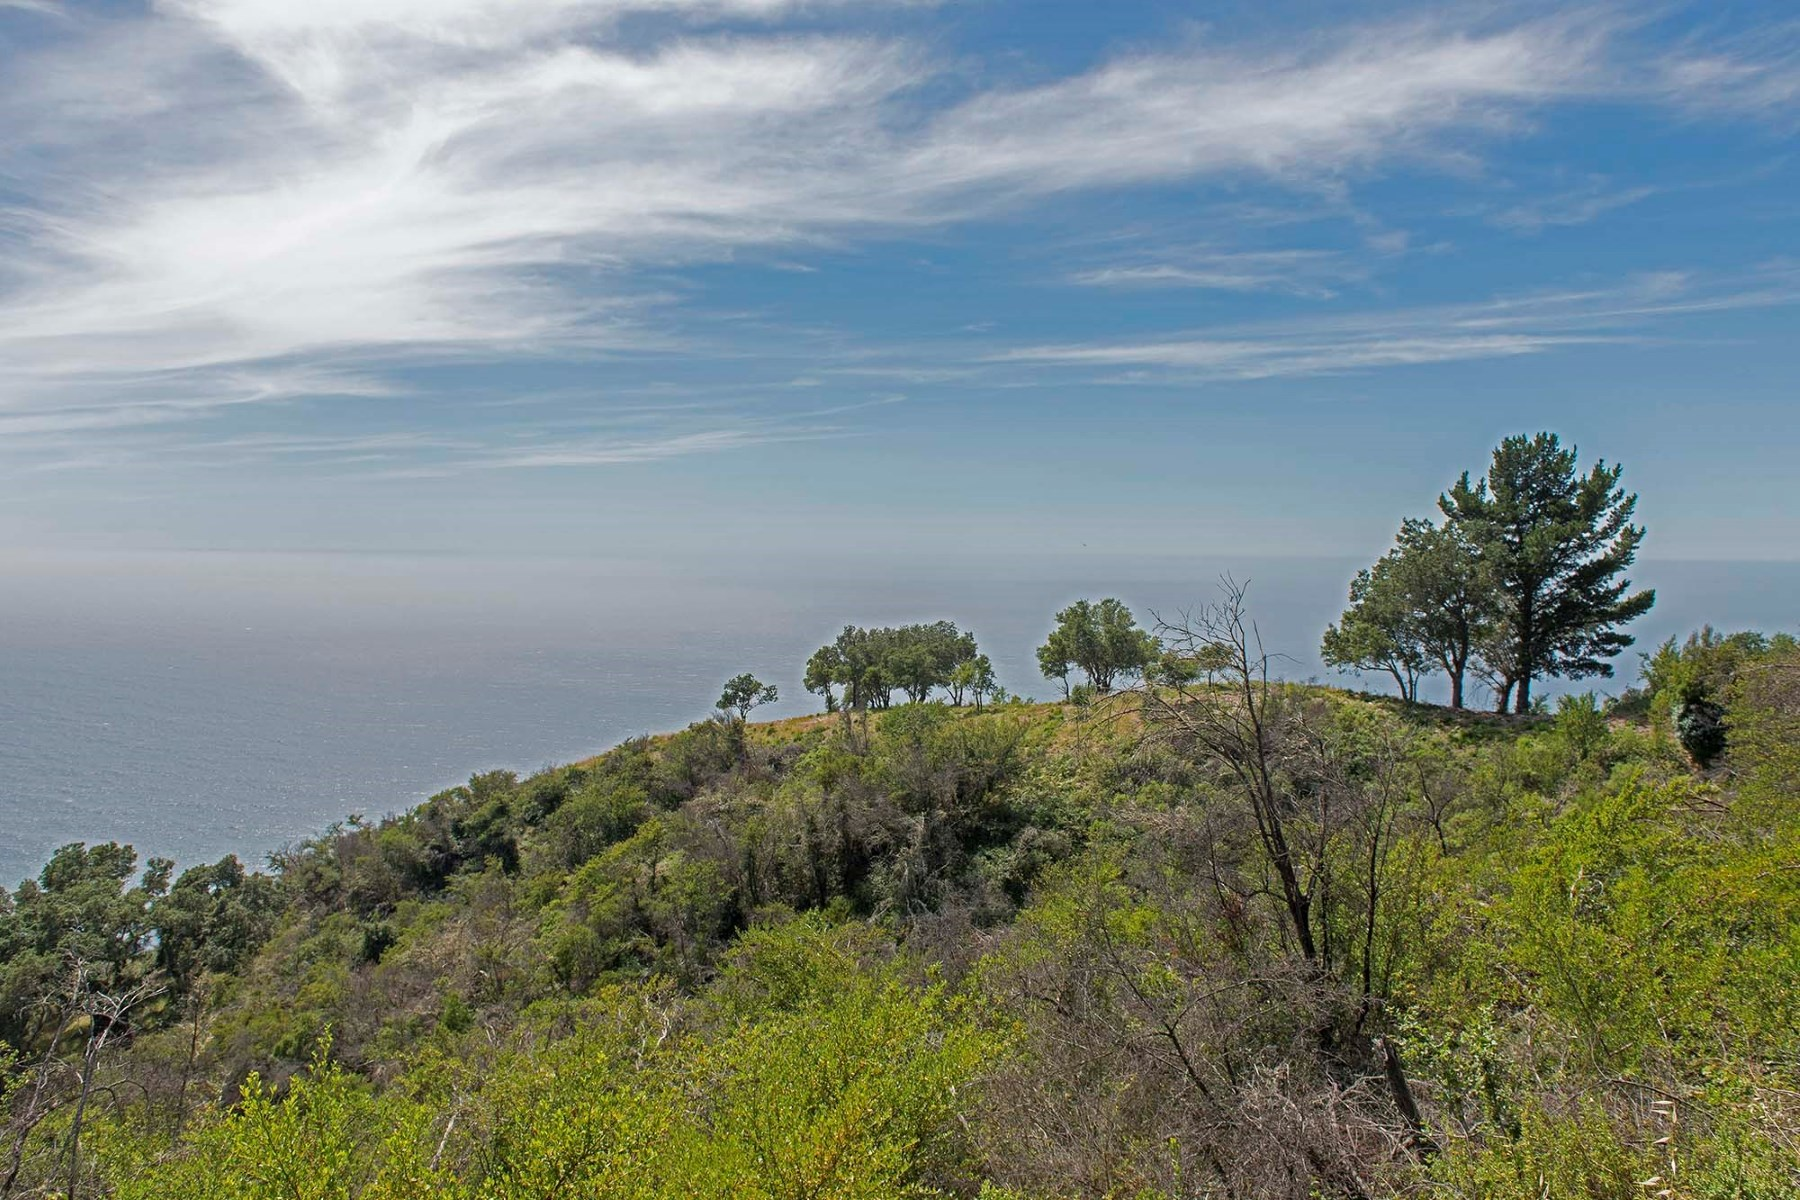 Terreno por un Venta en Panoramic Ocean and Mountain Views Highway 1 At Santa Lucia Ranch Big Sur, California 93920 Estados Unidos